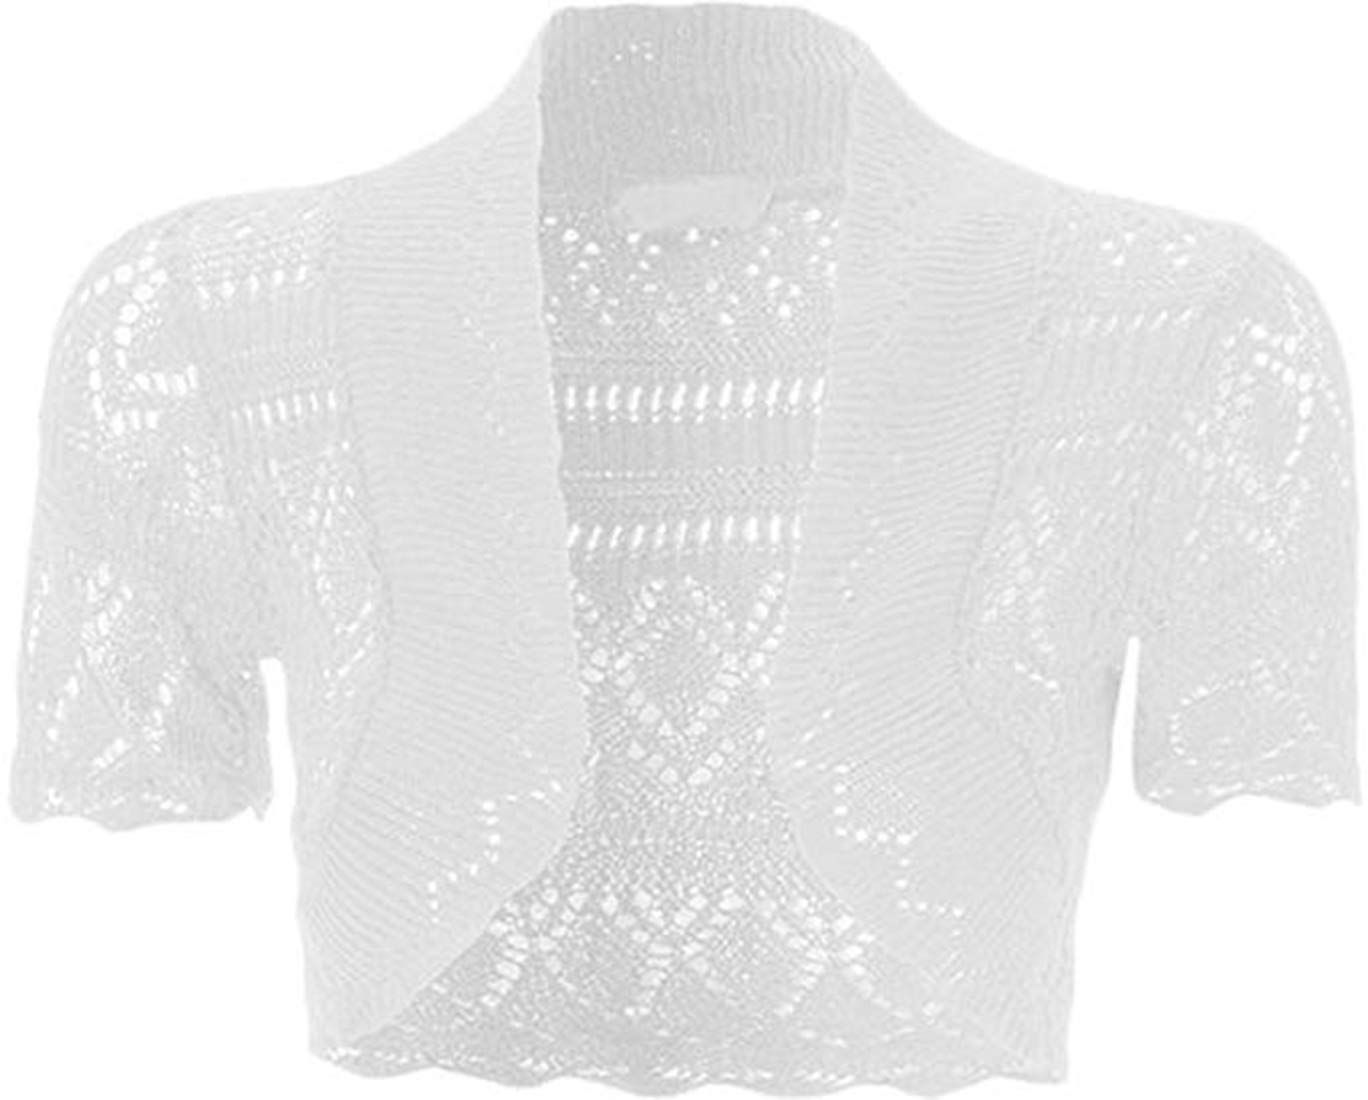 Loxdonz Girls Kids Short Sleeve Crochet Knitted Bolero Shrug Top